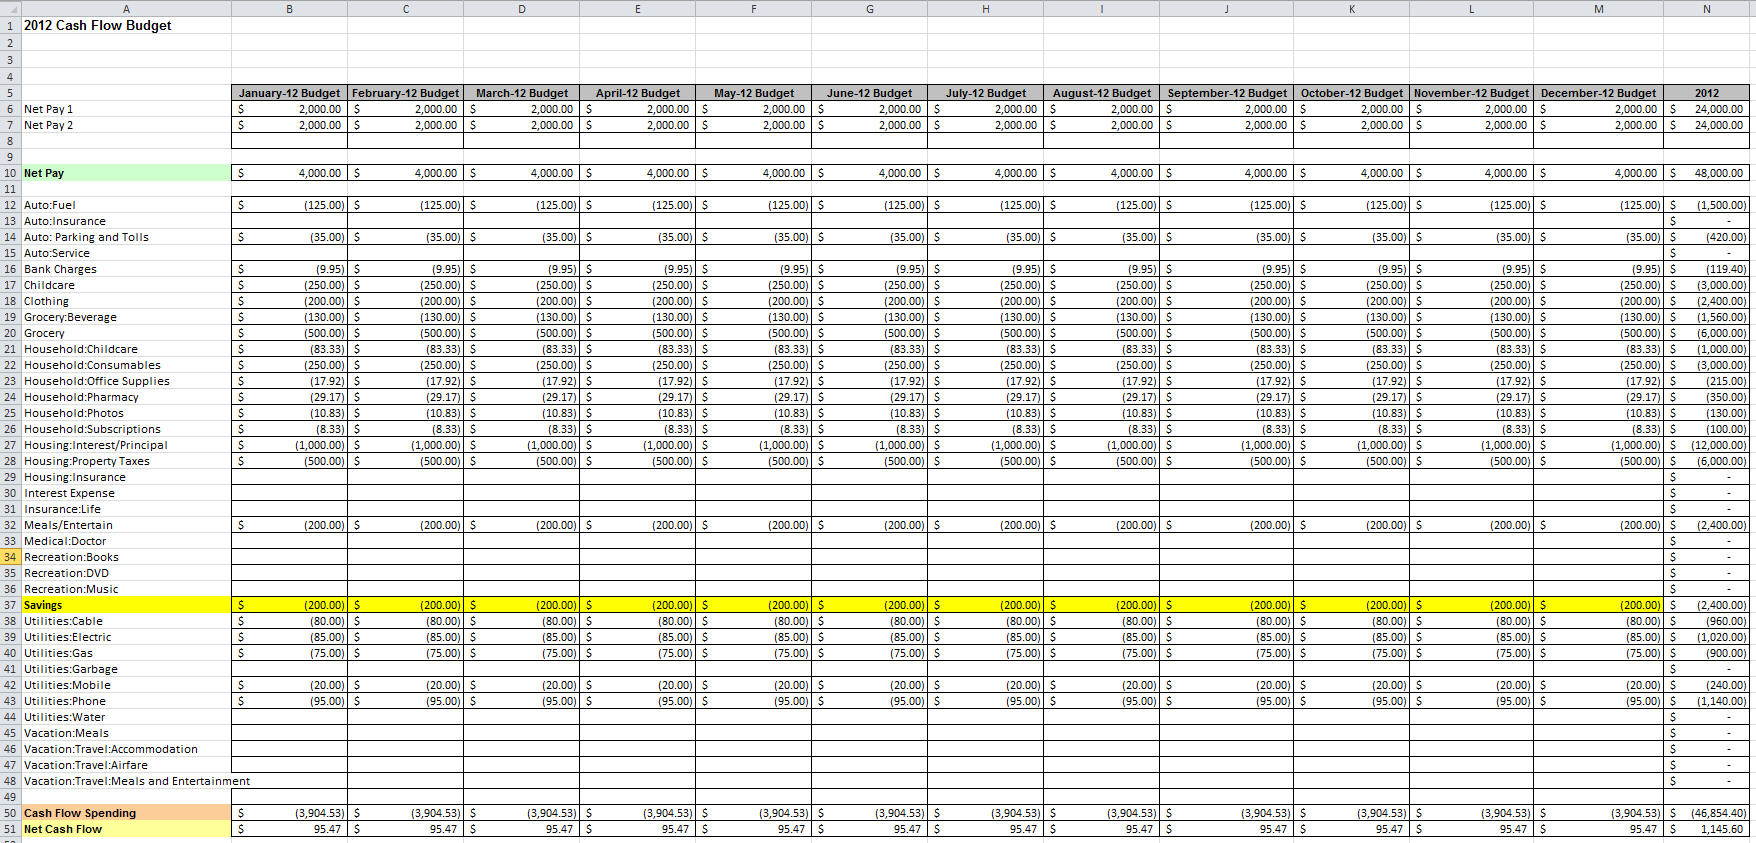 Cash Flow Budget Spreadsheet Spreadsheet Downloa Cash Flow